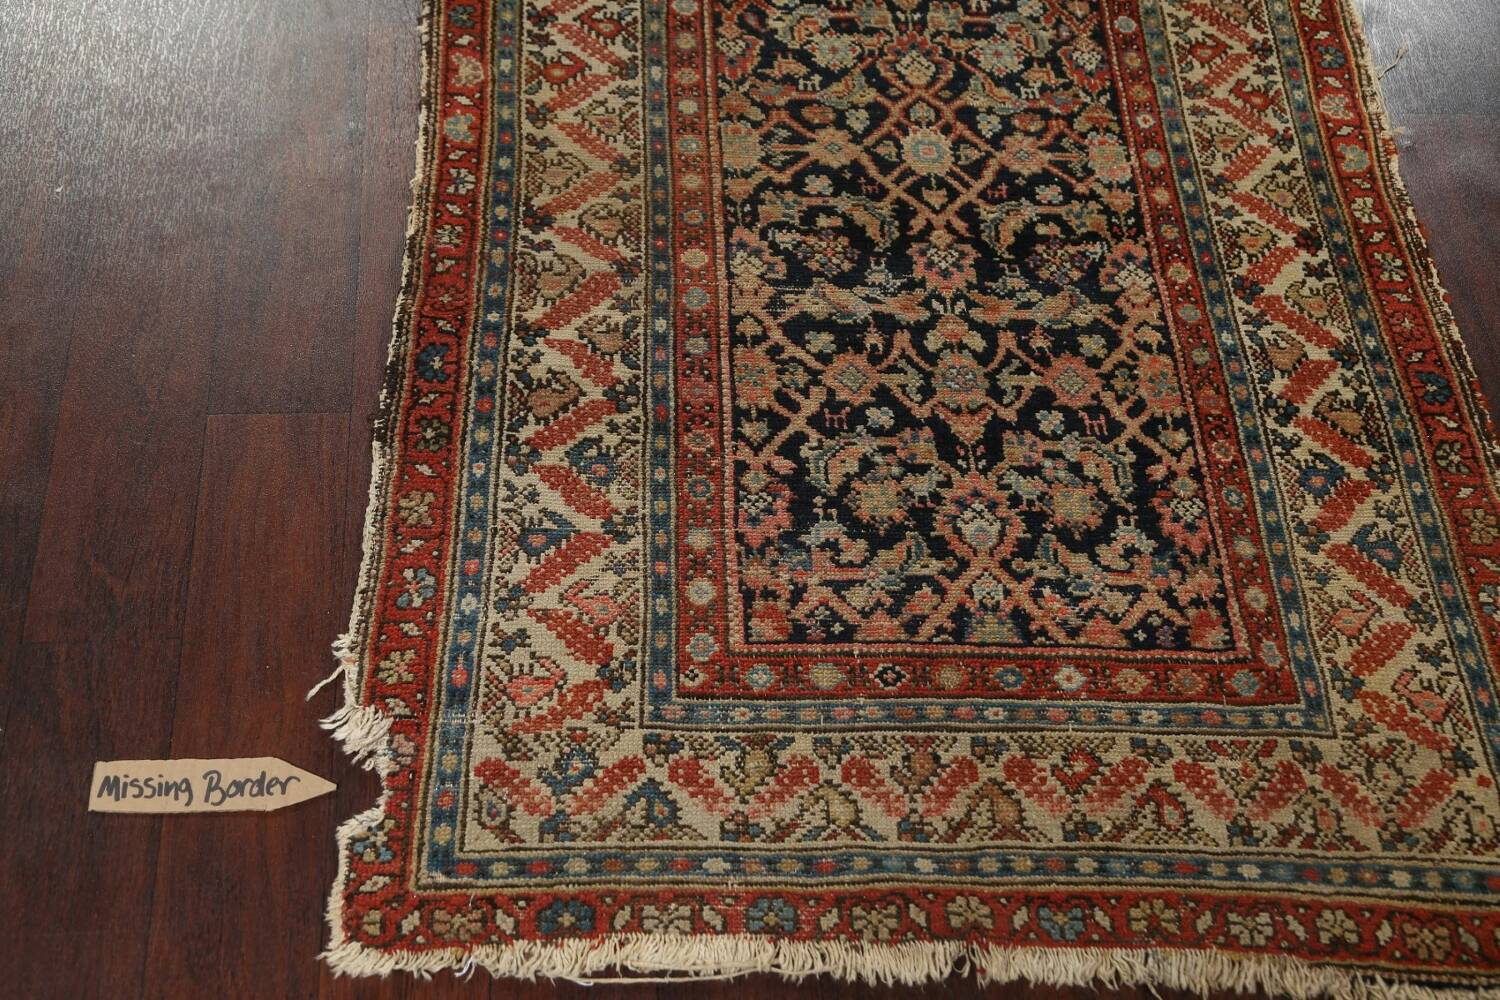 Pre-1900 Antique Vegetable Dye Malayer Persian Rug 3x13 image 10